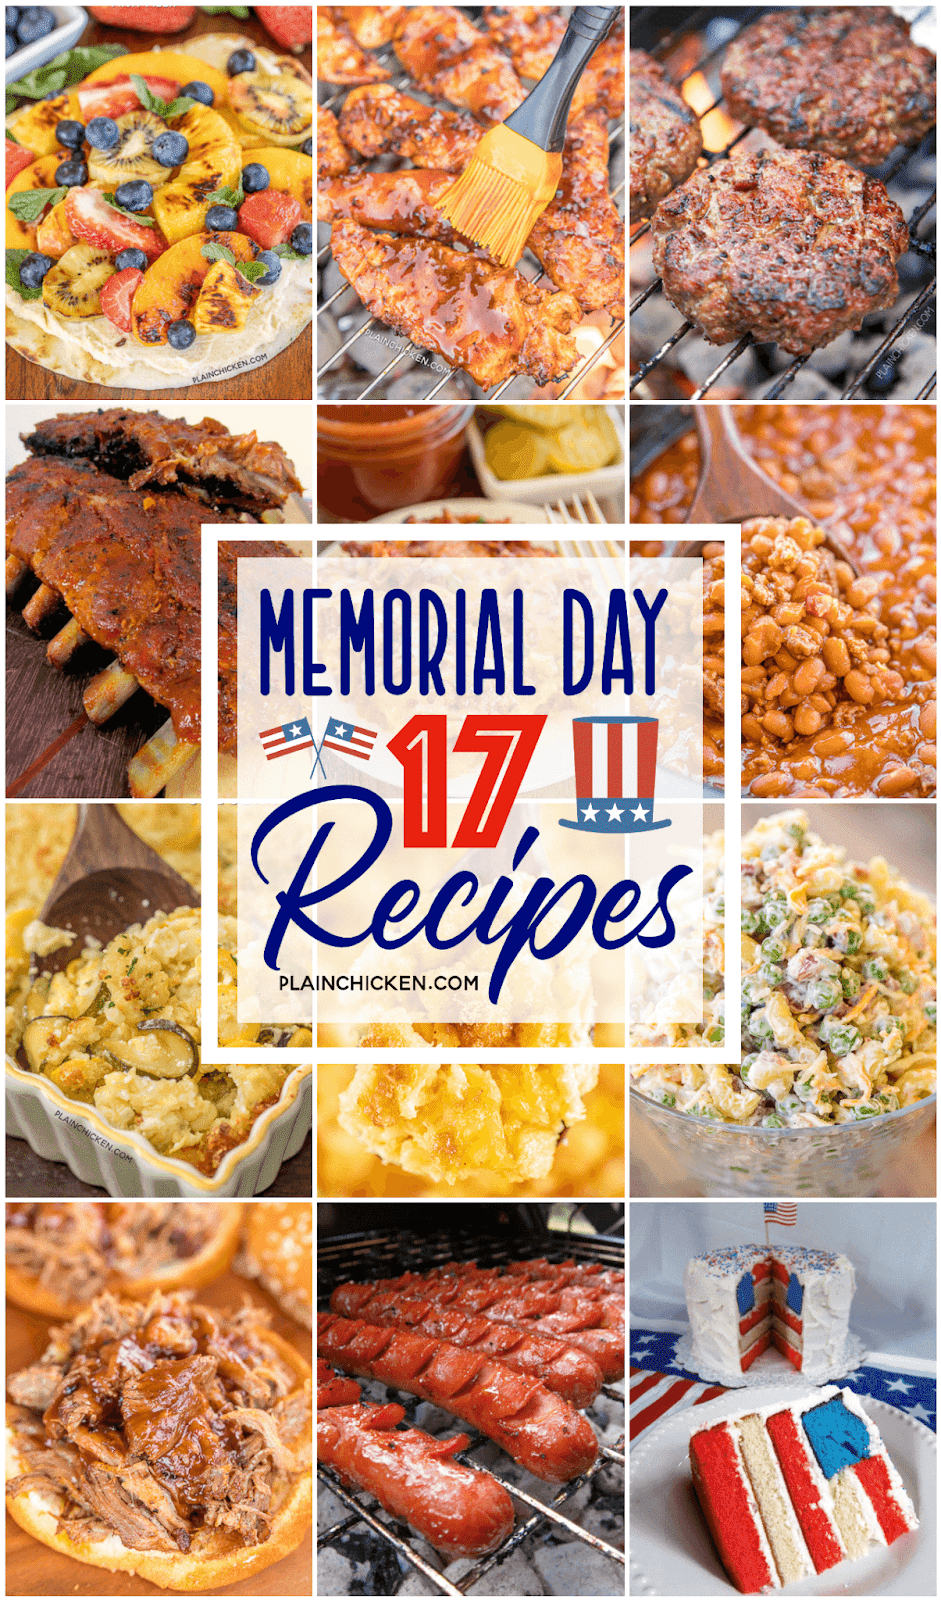 collage of food photos for Memorial Day